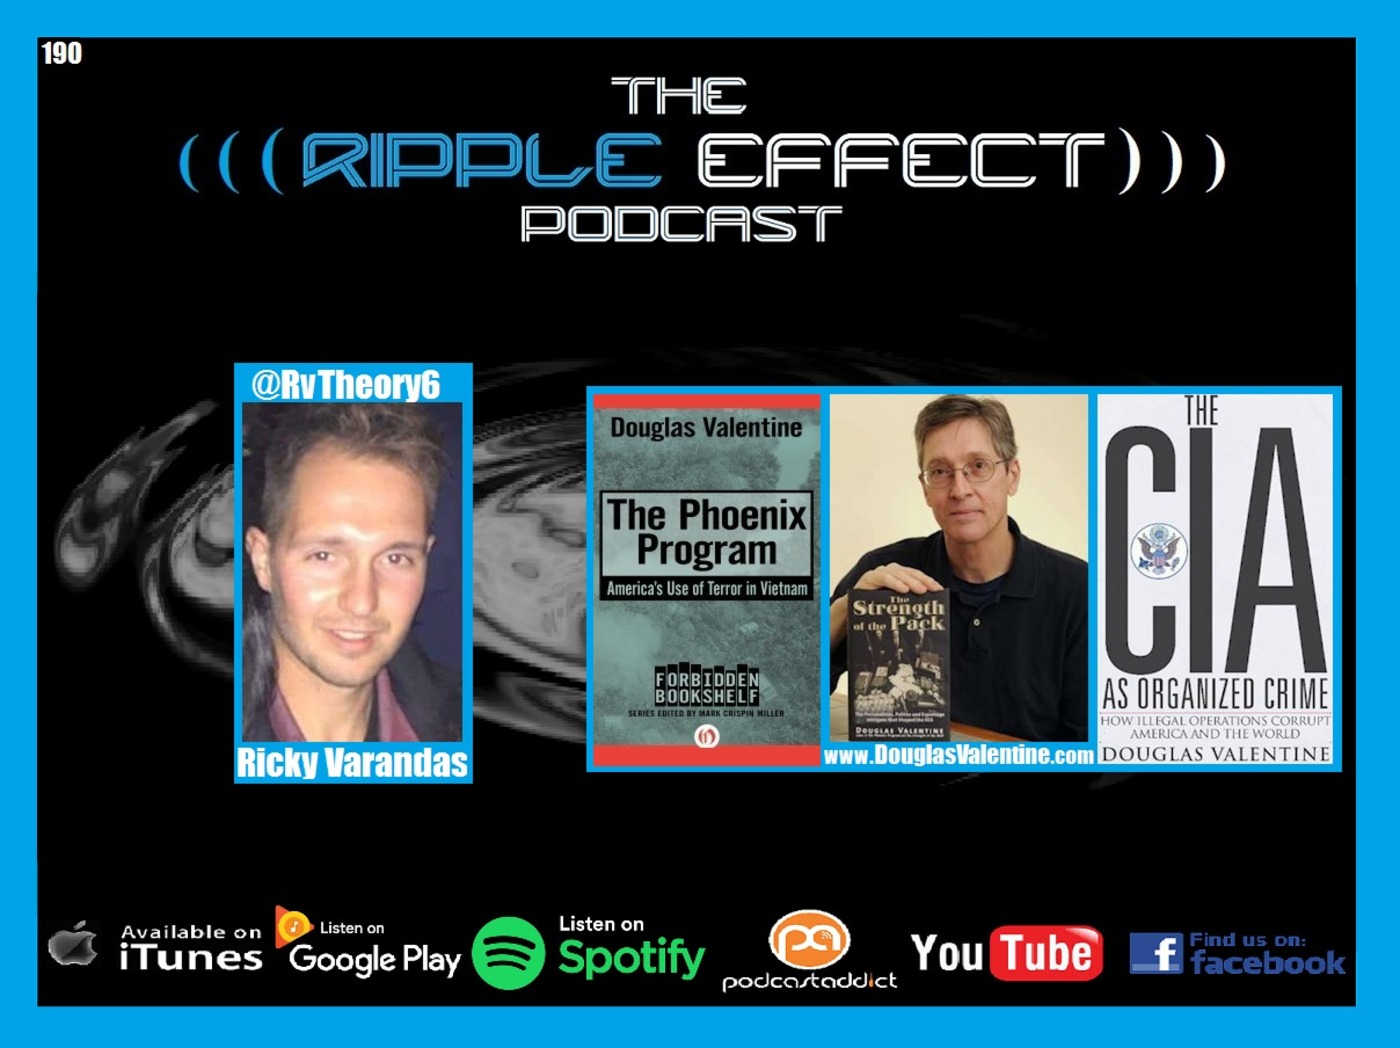 The Ripple Effect Podcast #190 (Douglas Valentine | Social Control